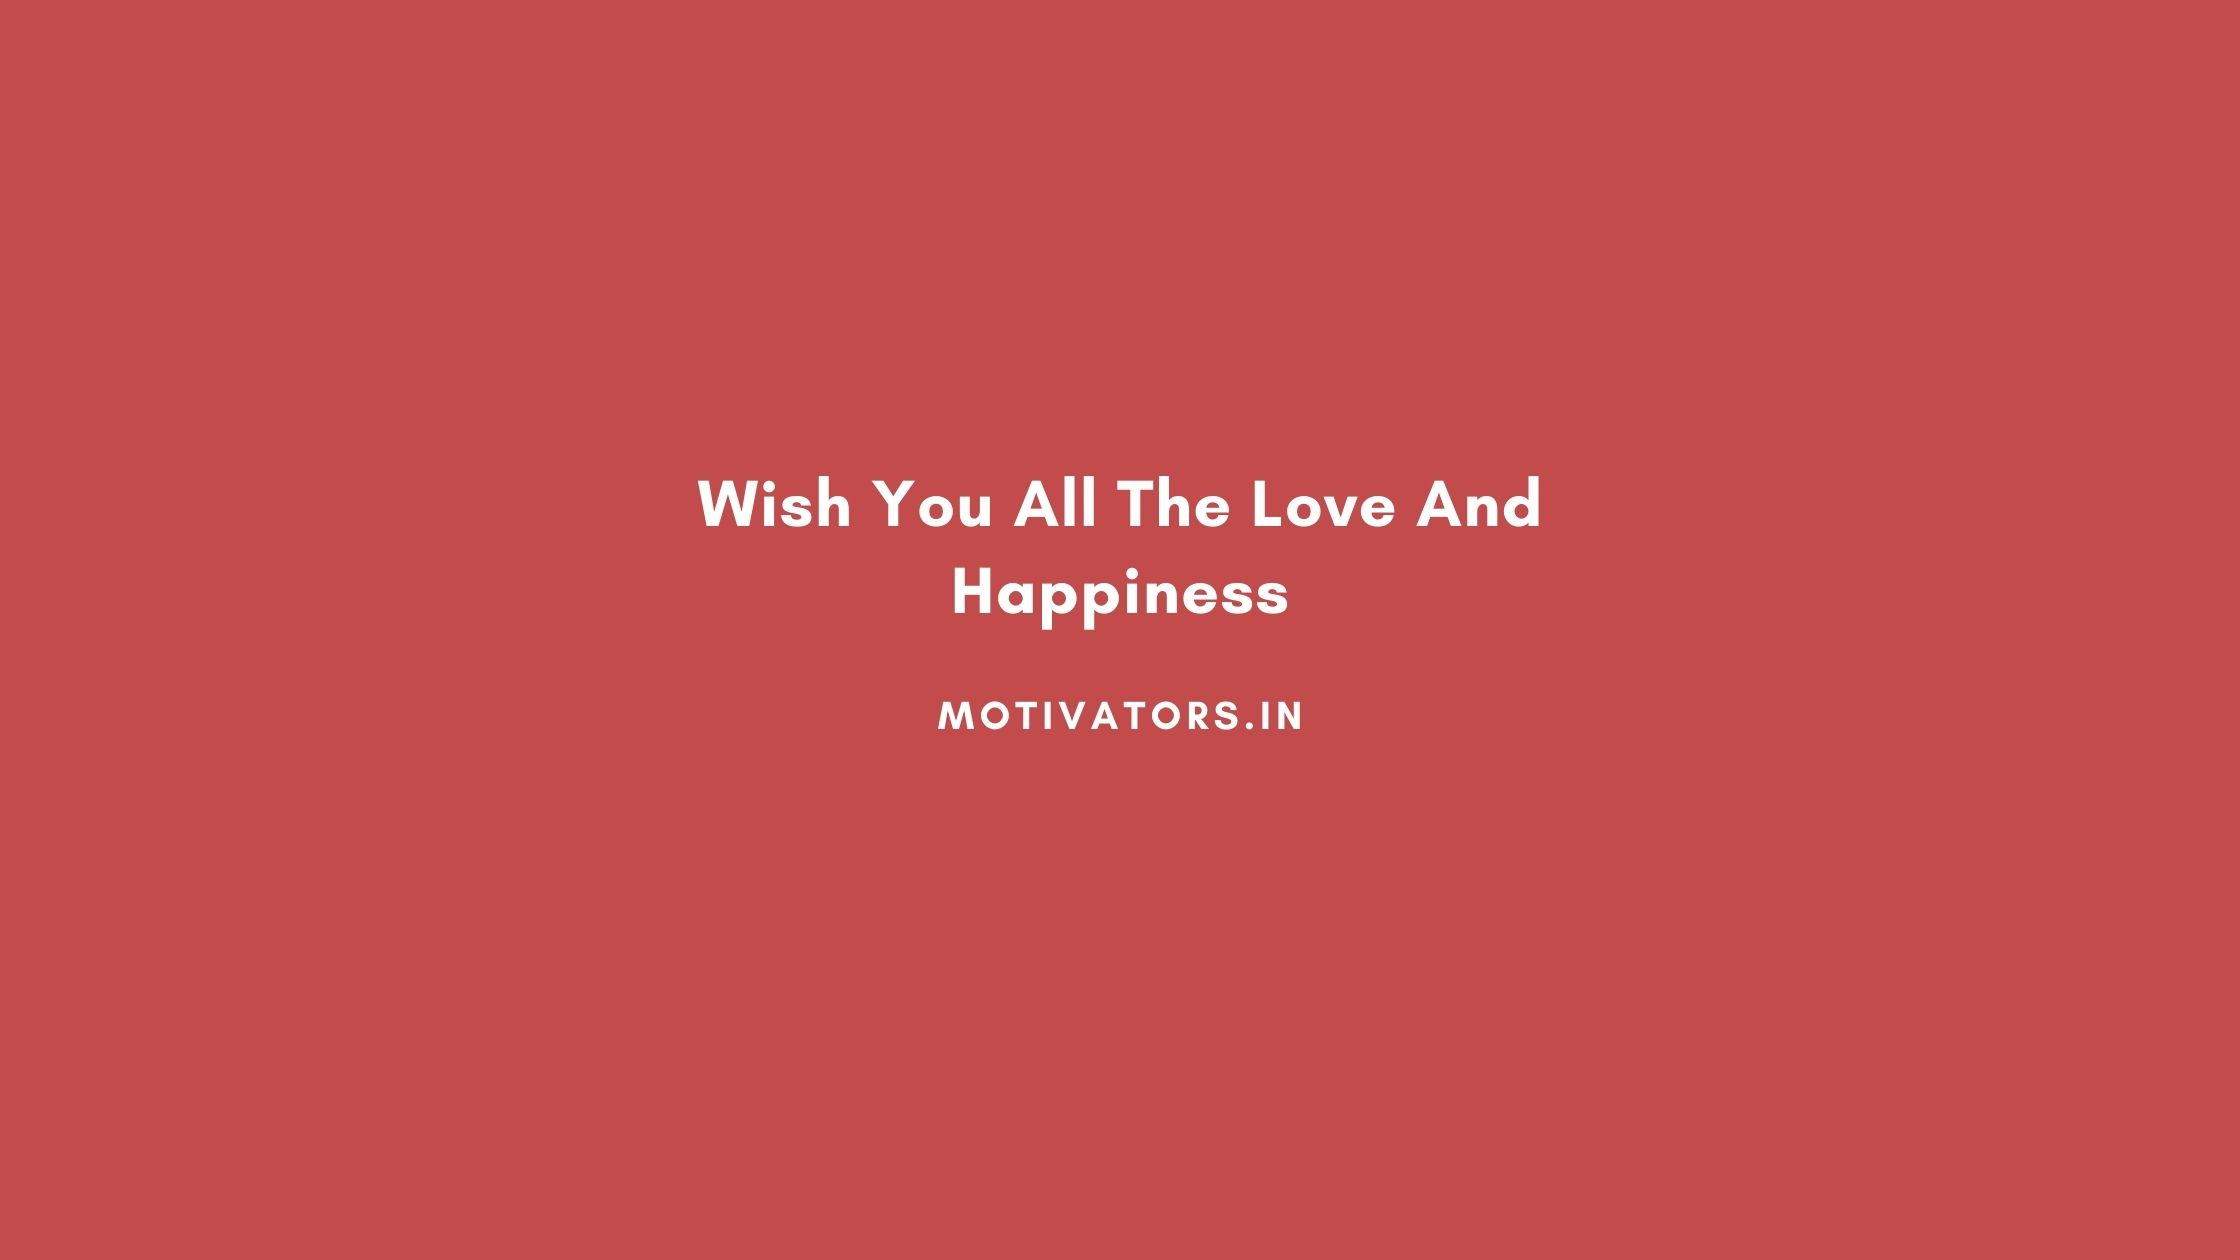 Wish You All The Love And Happiness